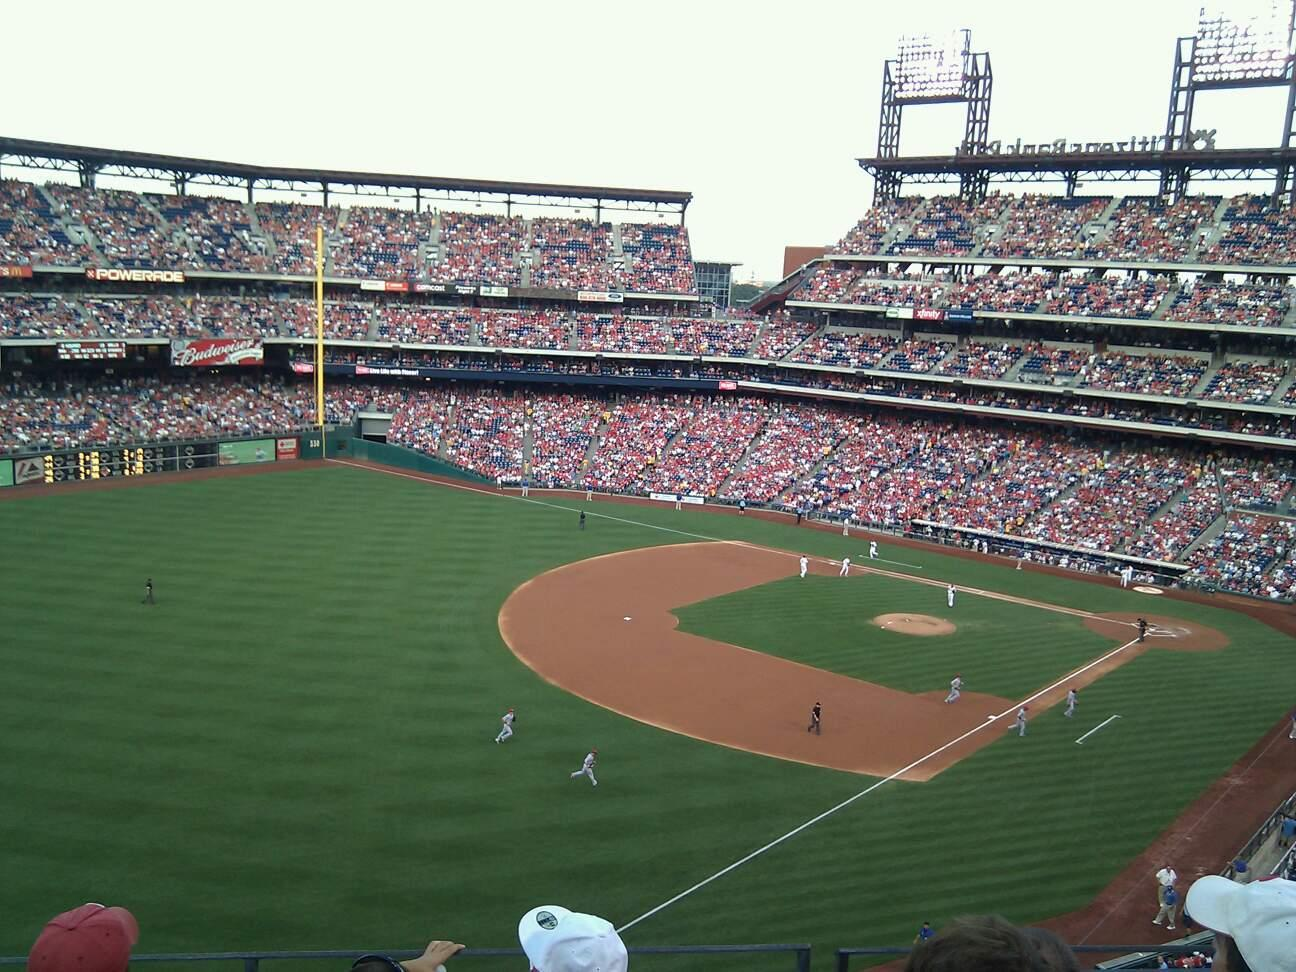 Citizens Bank Park Secção 332 Fila 4 Lugar 5